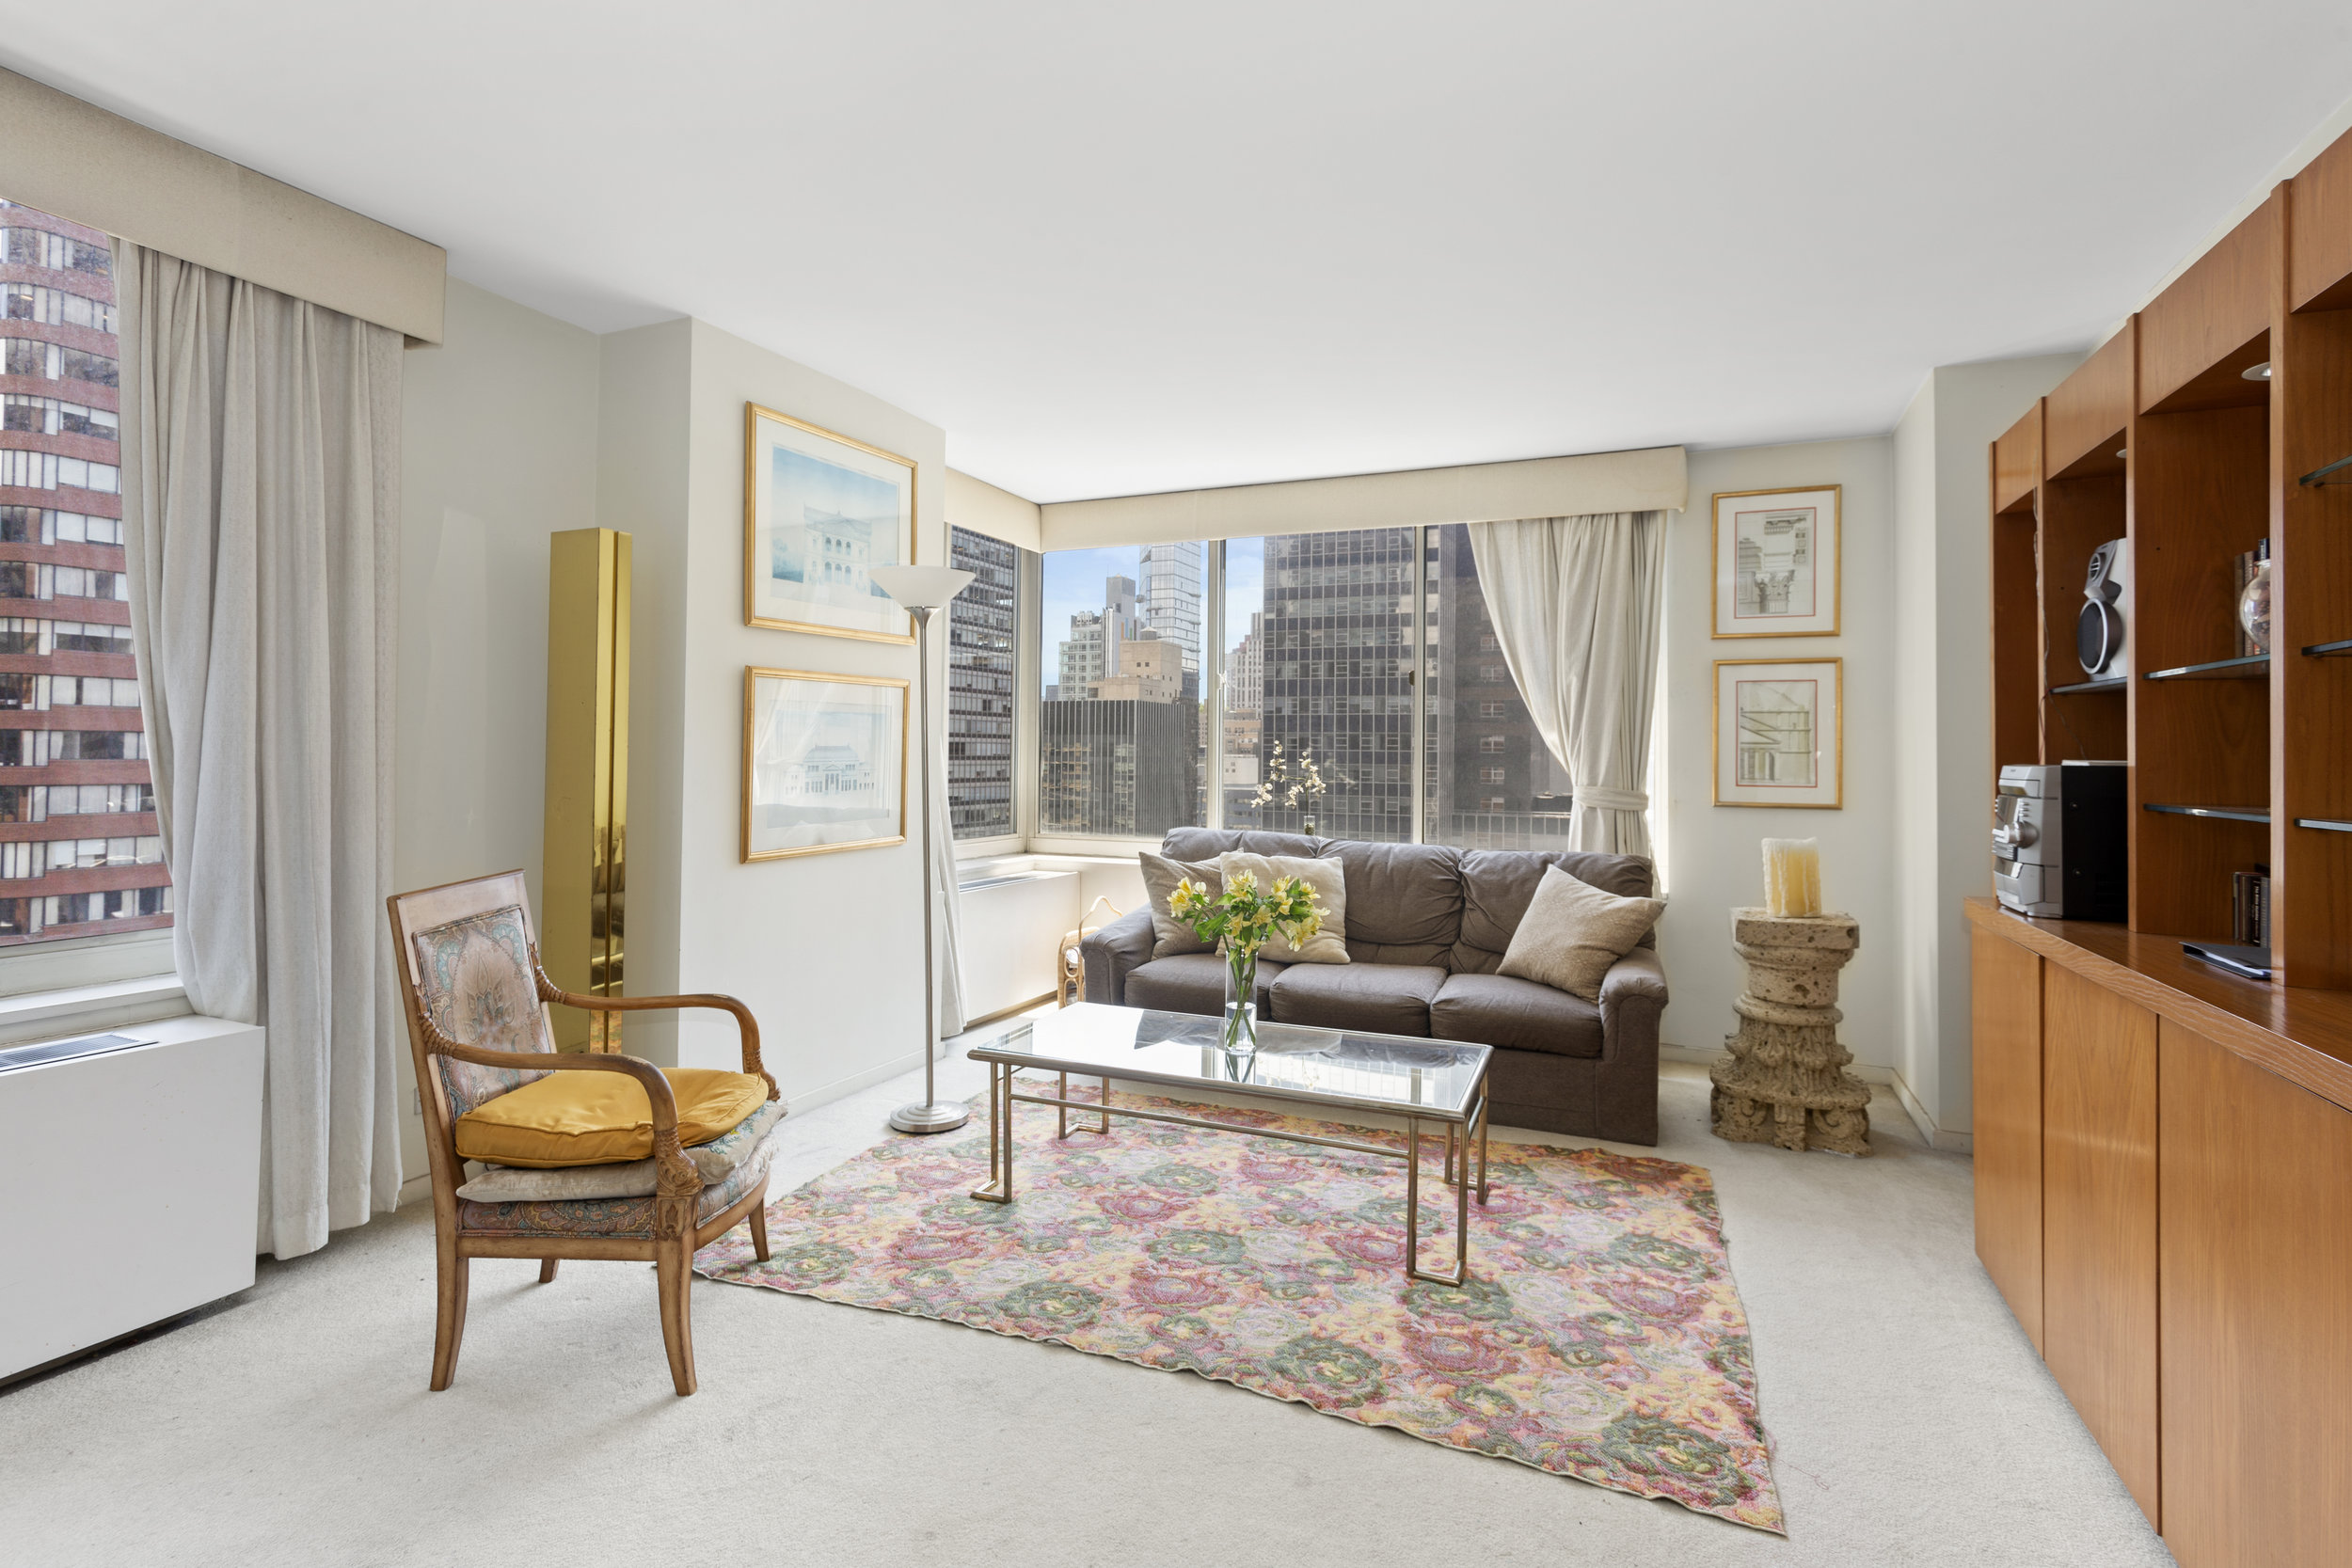 Sold   145 East 48th Street | 28F | $980,000